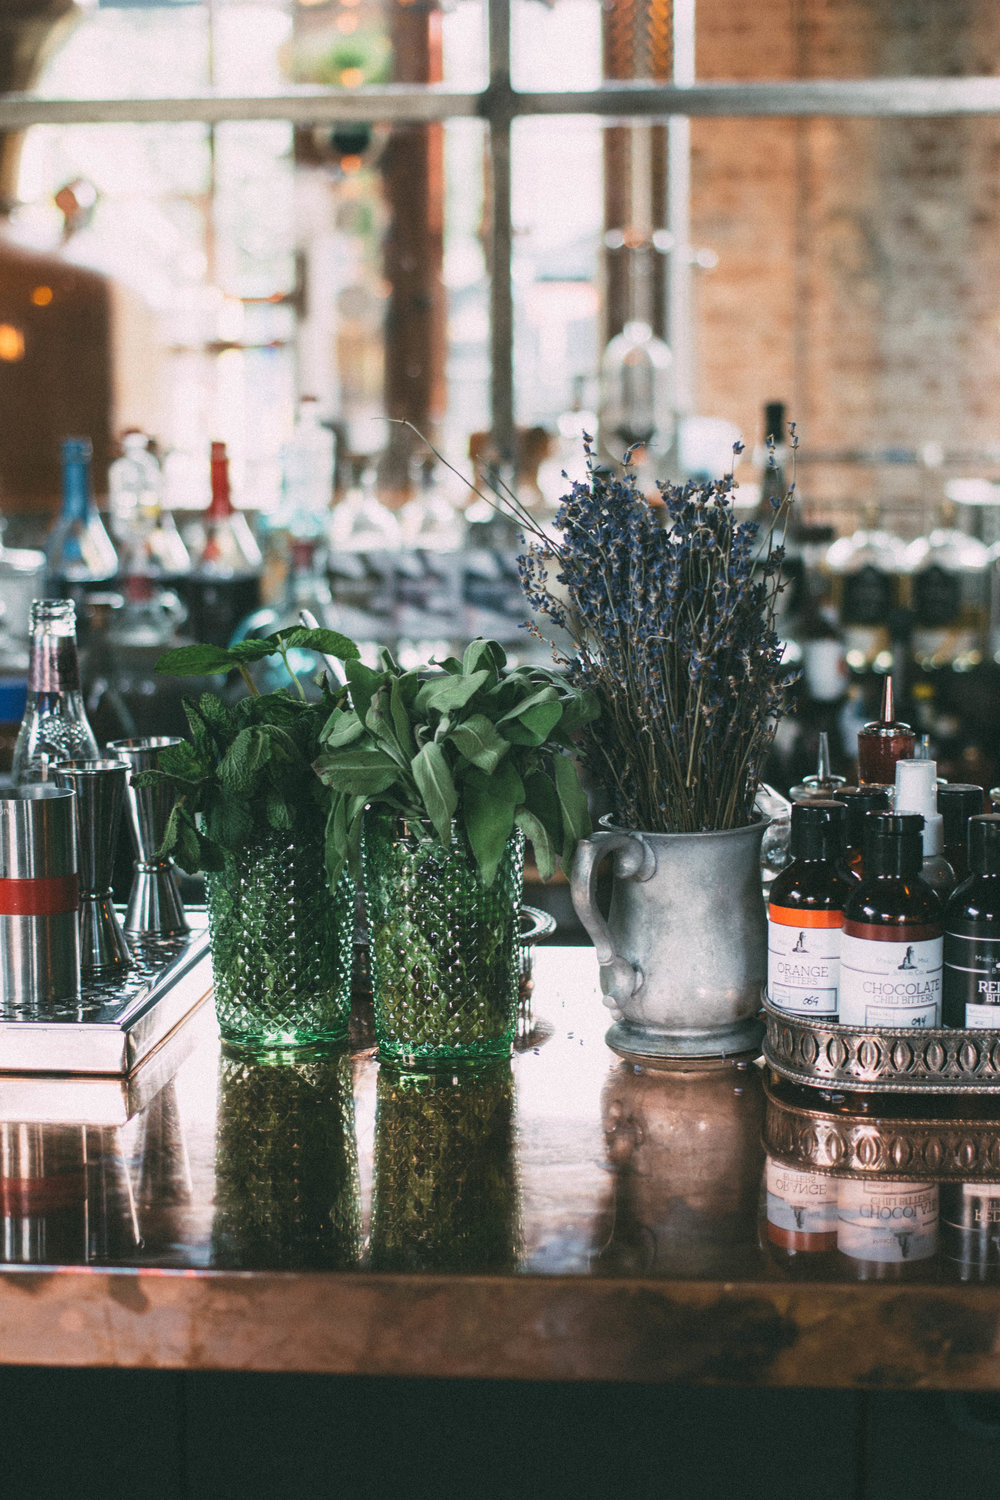 When in East London... - Drink gin, straight. (Also, navy strength rum if you're feeling tough).Let's chat about my little trip inside the Insta-worthy East London Liquor Company for a bit of gin tasting.